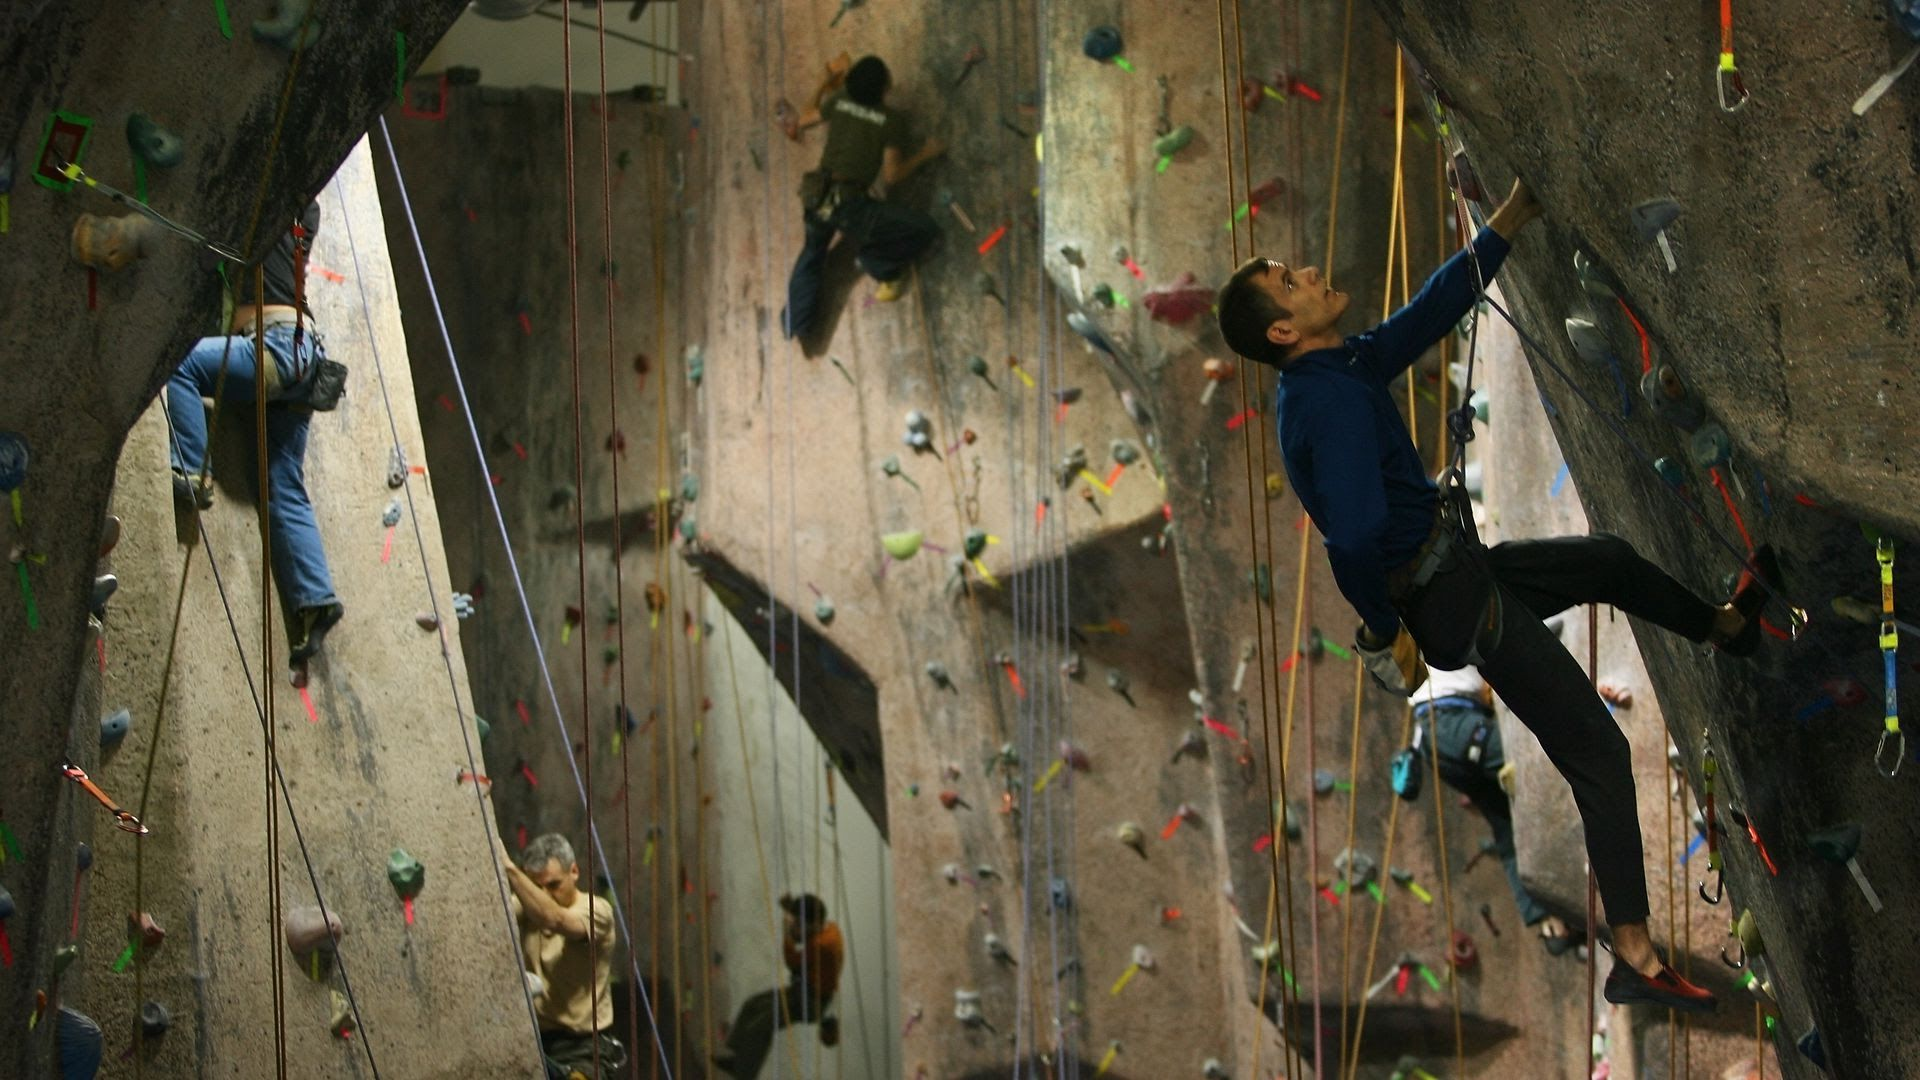 Rock climbing is having a moment